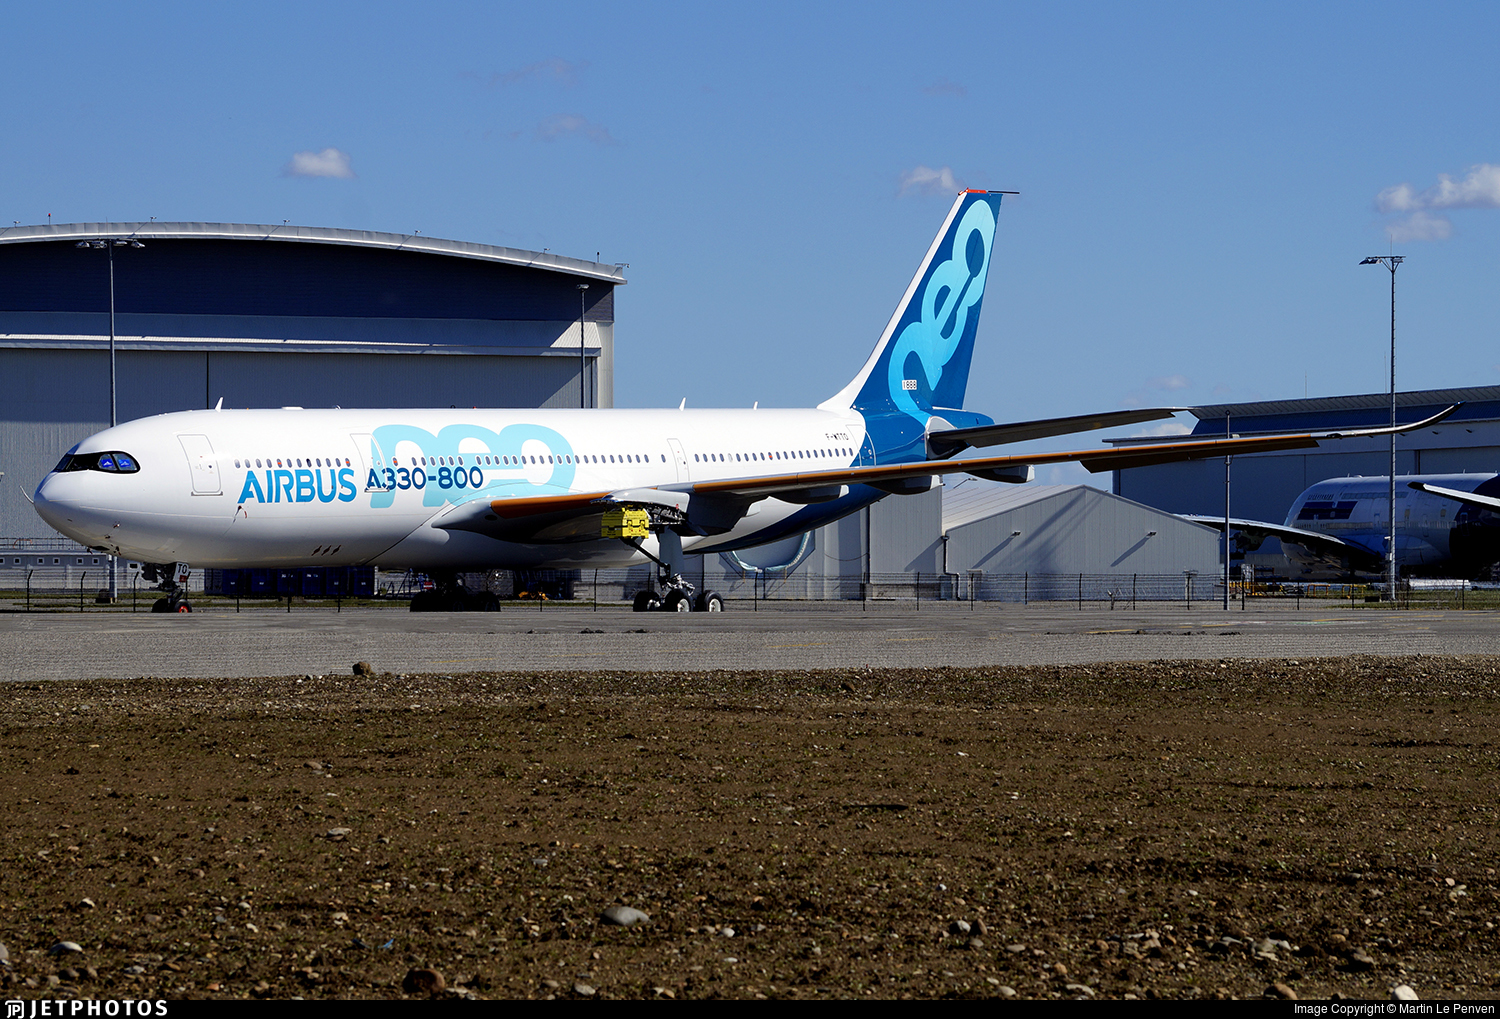 F-WTTO - Airbus A330-841 - Airbus Industrie